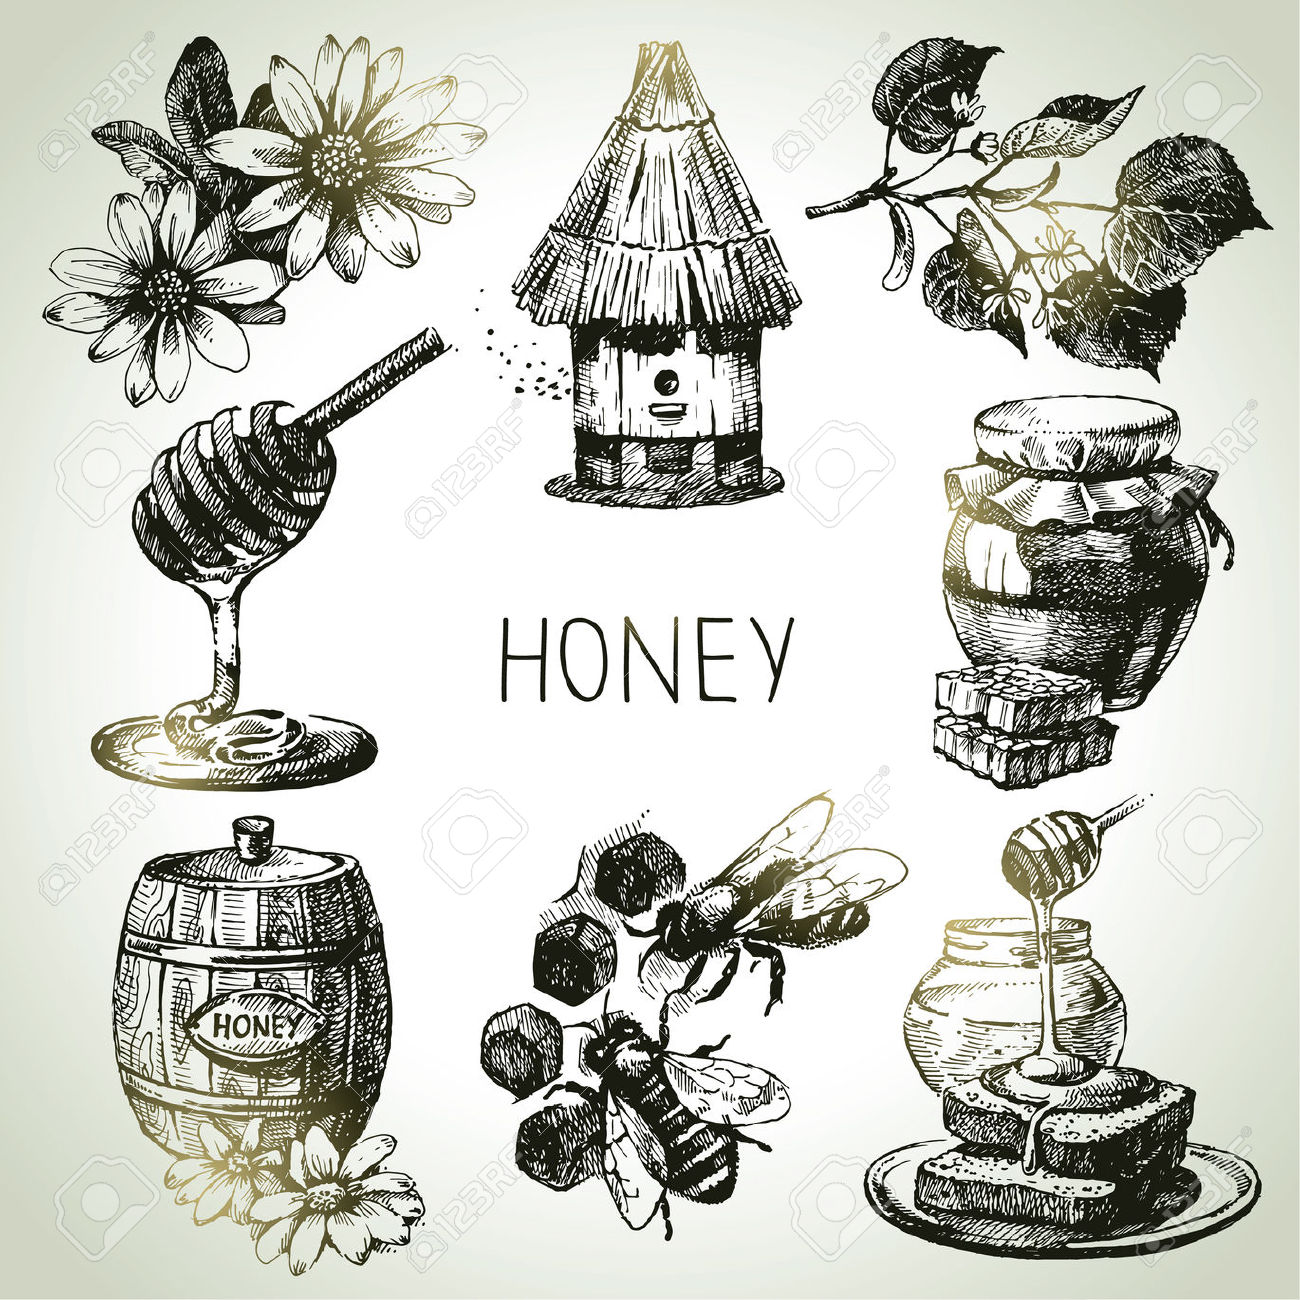 A group of vintage bees and honey illustrations for inspiration!